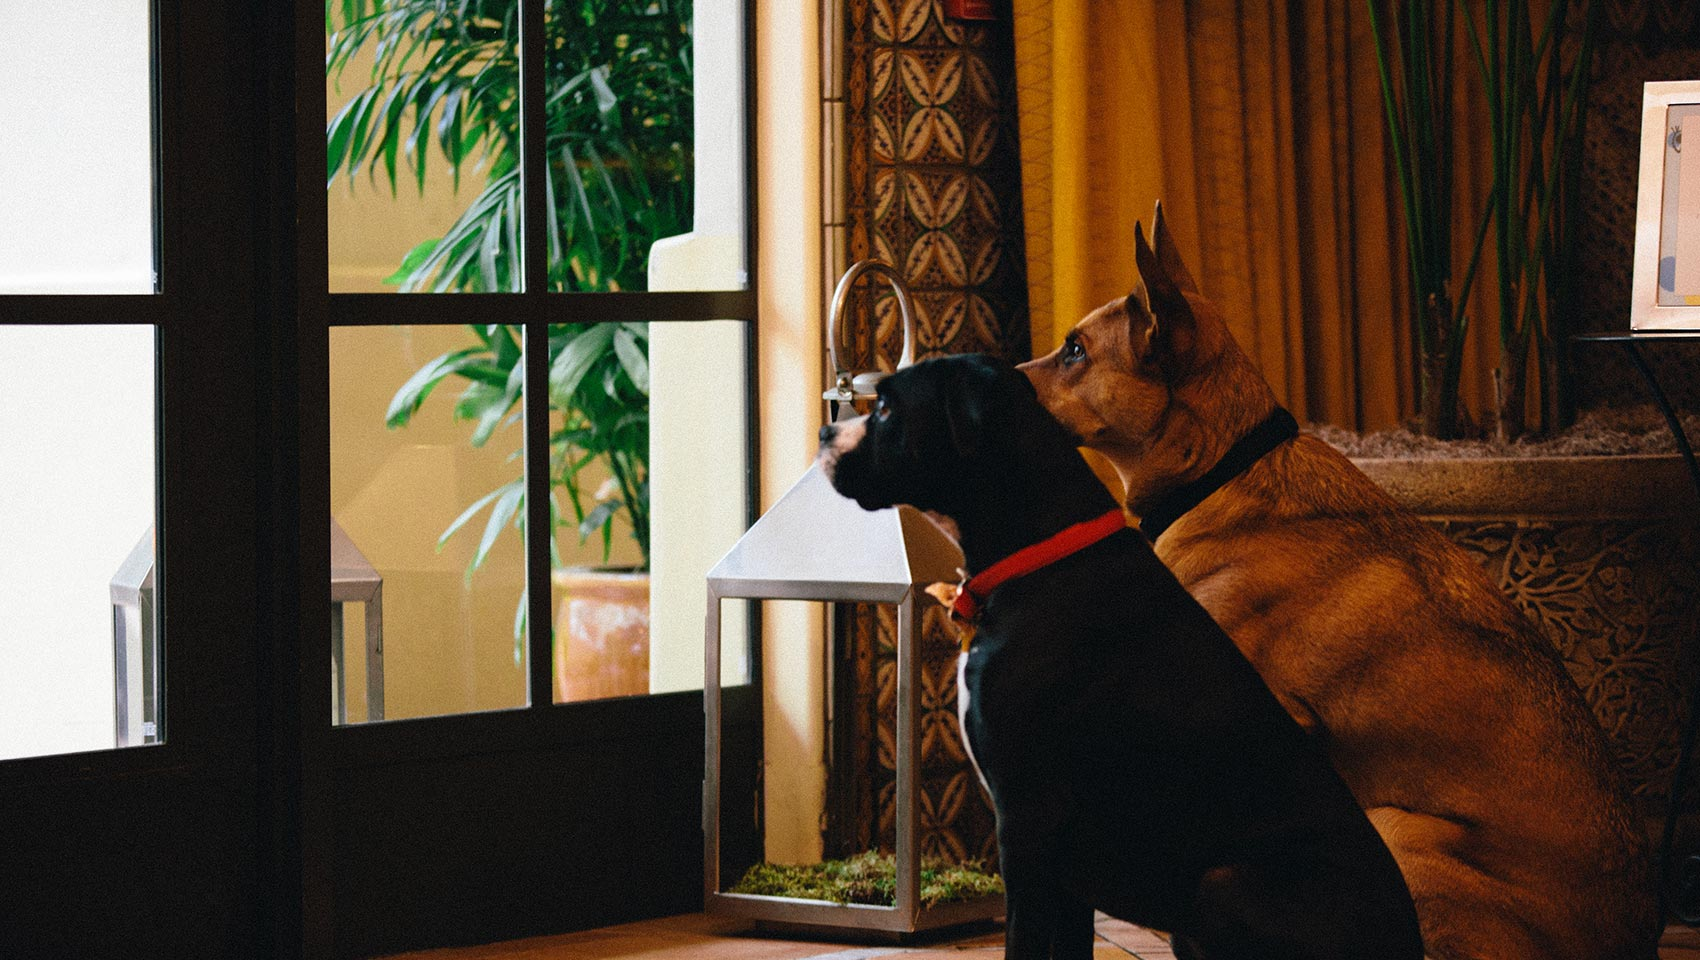 Calling All Four Legged Friends Enjoy Our Pet Friendly Portland Hotel